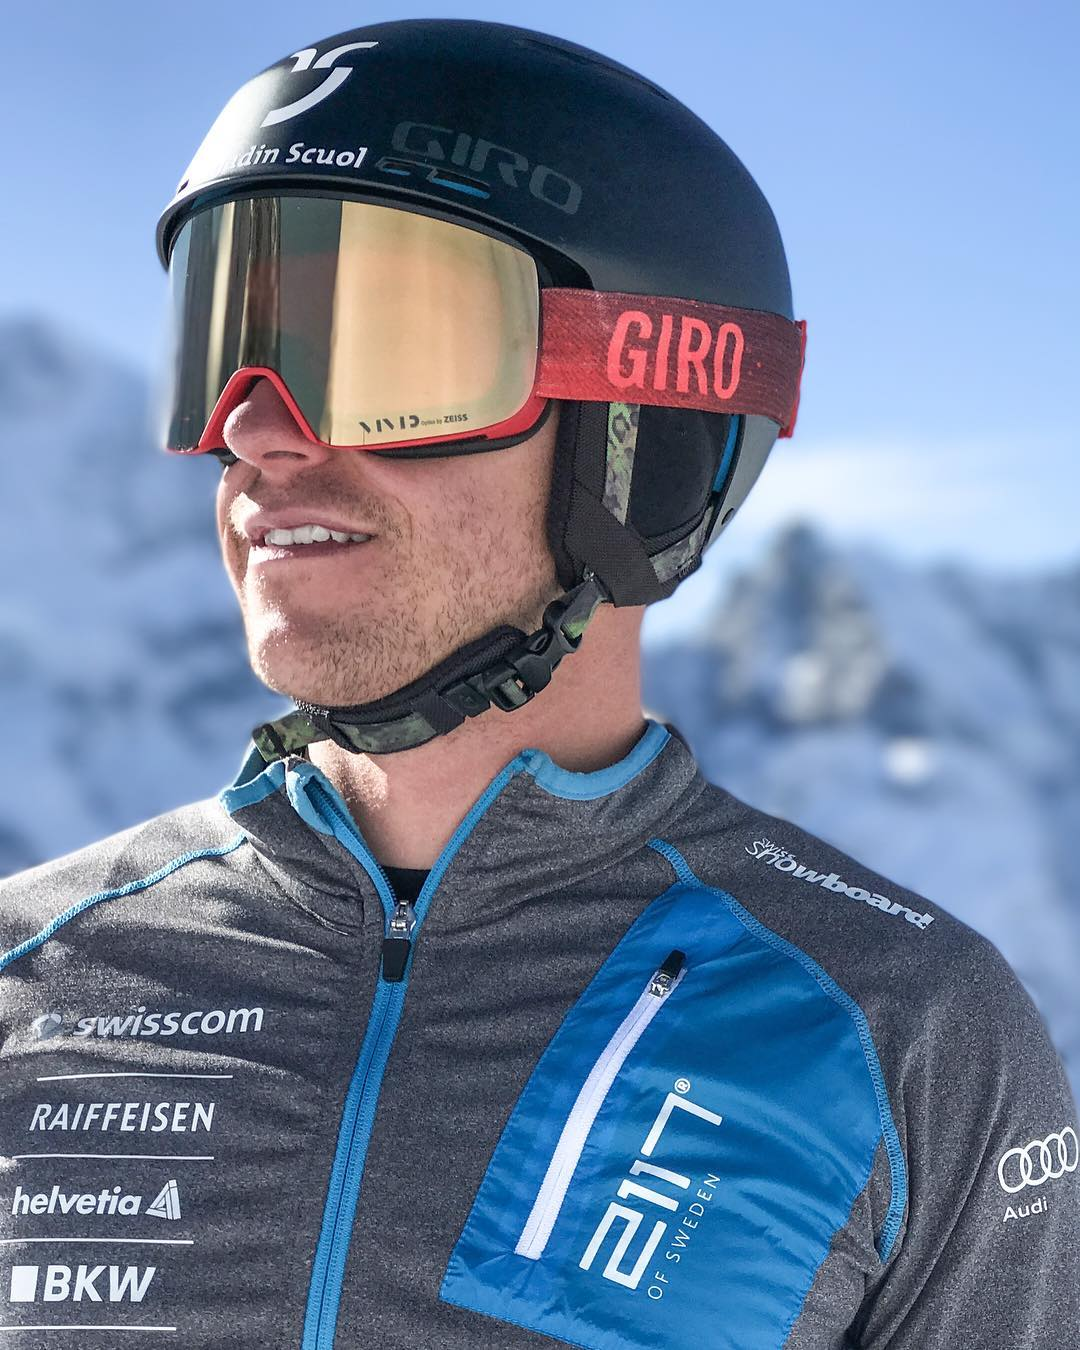 Enjoying the perfect view through the new @girosnow goggle 🤩🧐😎🤓🏼 - VIVID is a patented lens technology developed by @girosnow in partnership with ZEISS Group that improves the visual experience on snow by enhancing contrast and definition. VIVID reduces eyestrain, improves reaction time, boosts confidence and delivers precise vision without color over saturation. See more on www.girosnow.ch - : @jessicafmaria